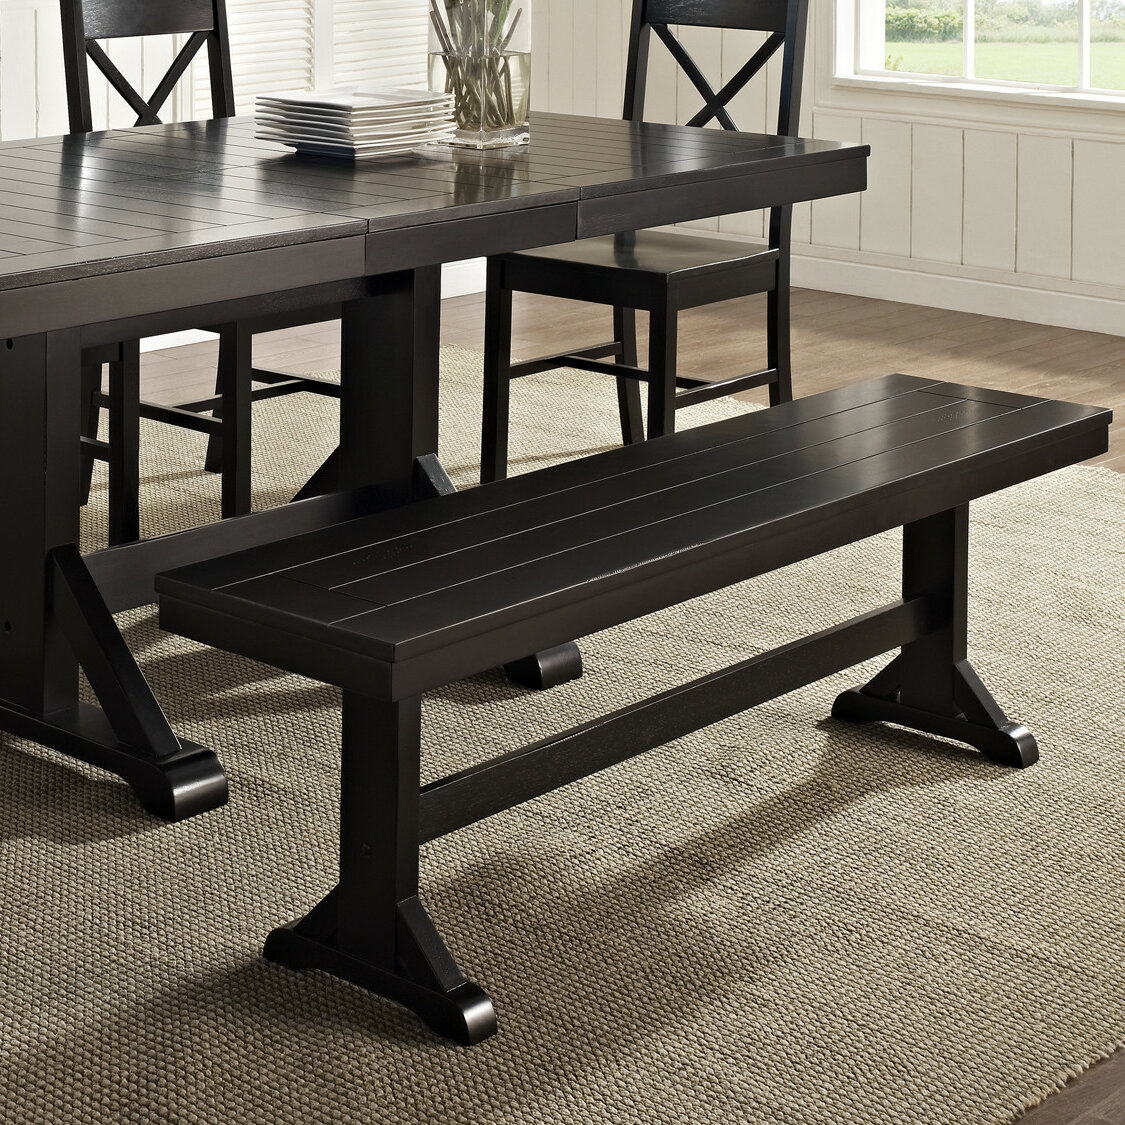 Kitchen Dining Benches You Ll Love In 2021 Wayfair